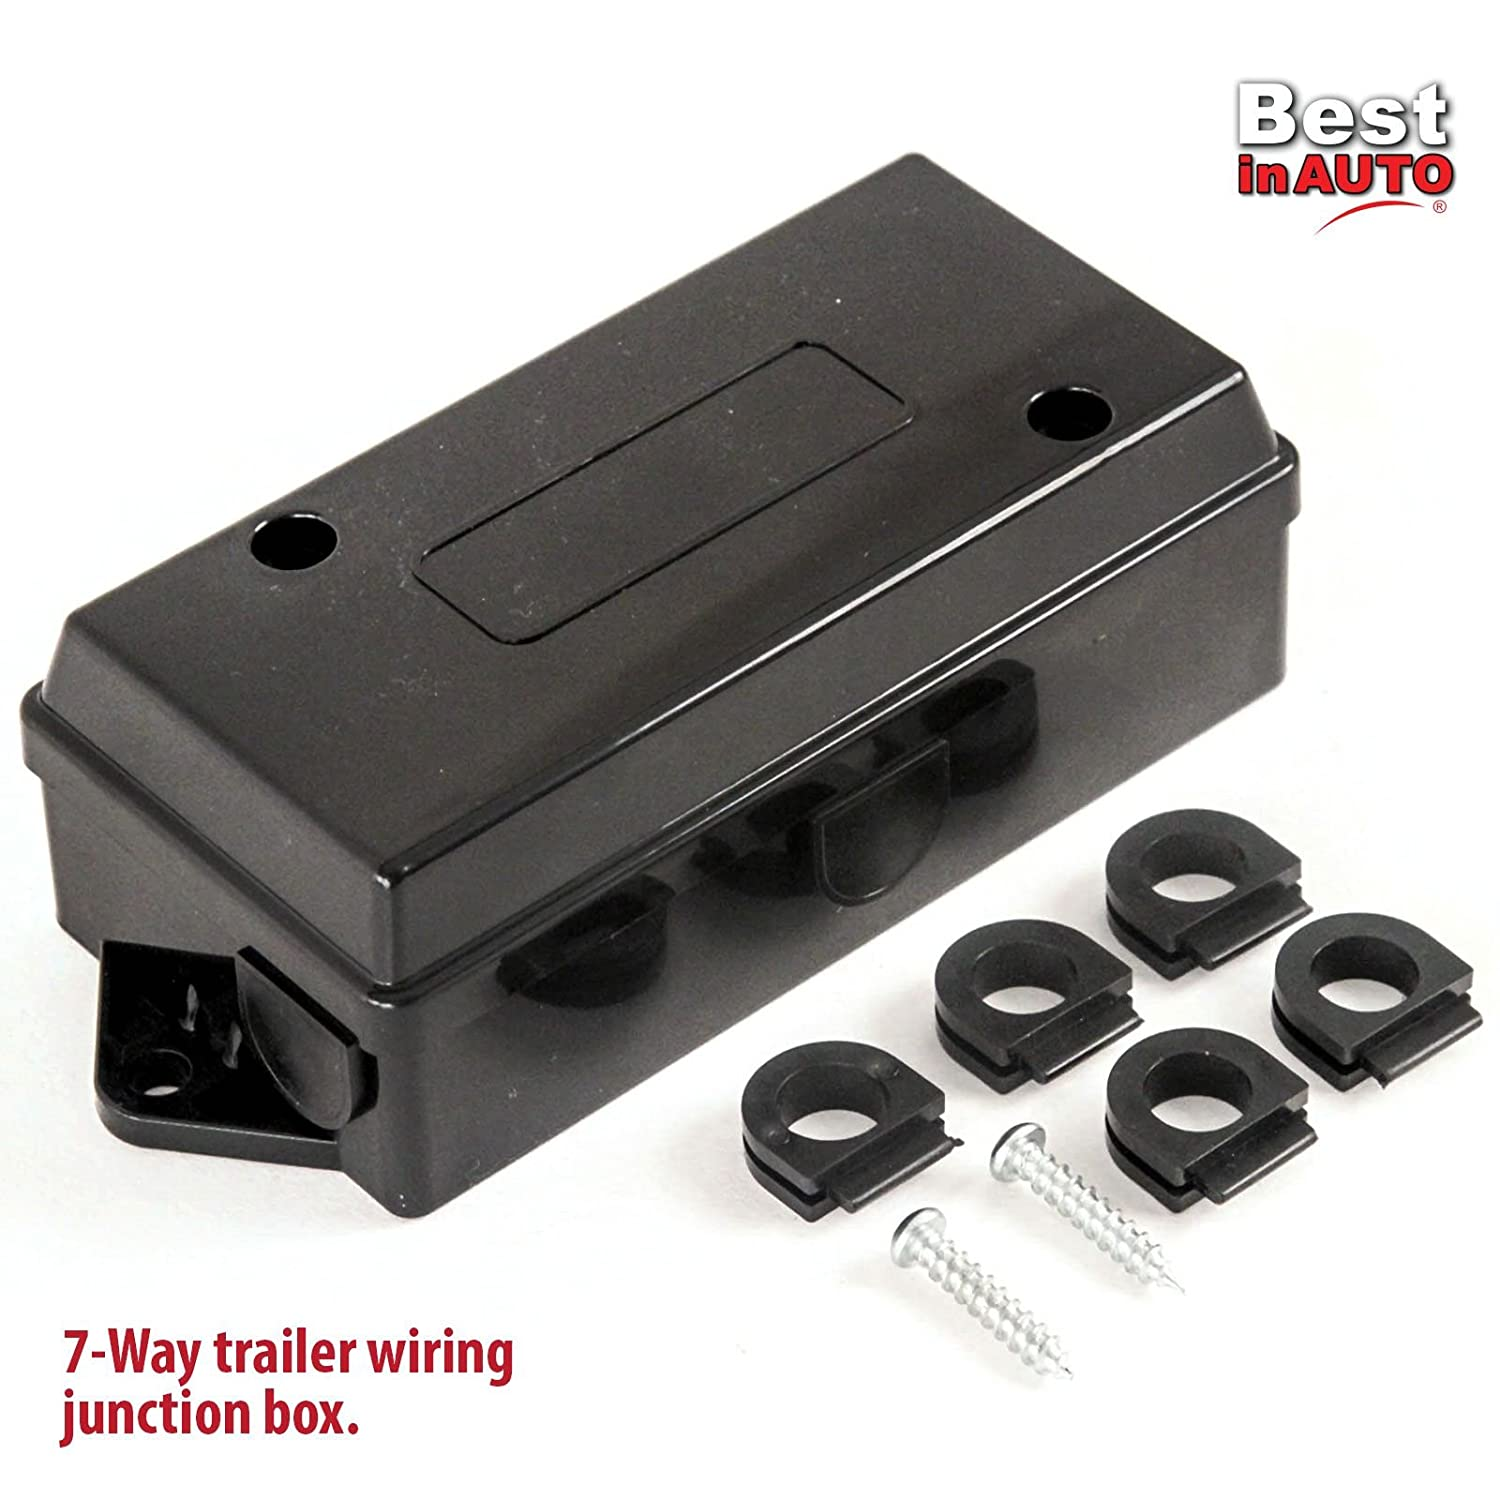 Best In Auto 2 Trailer Wiring Junction Box For 7 Way A Wire Connectors Automotive